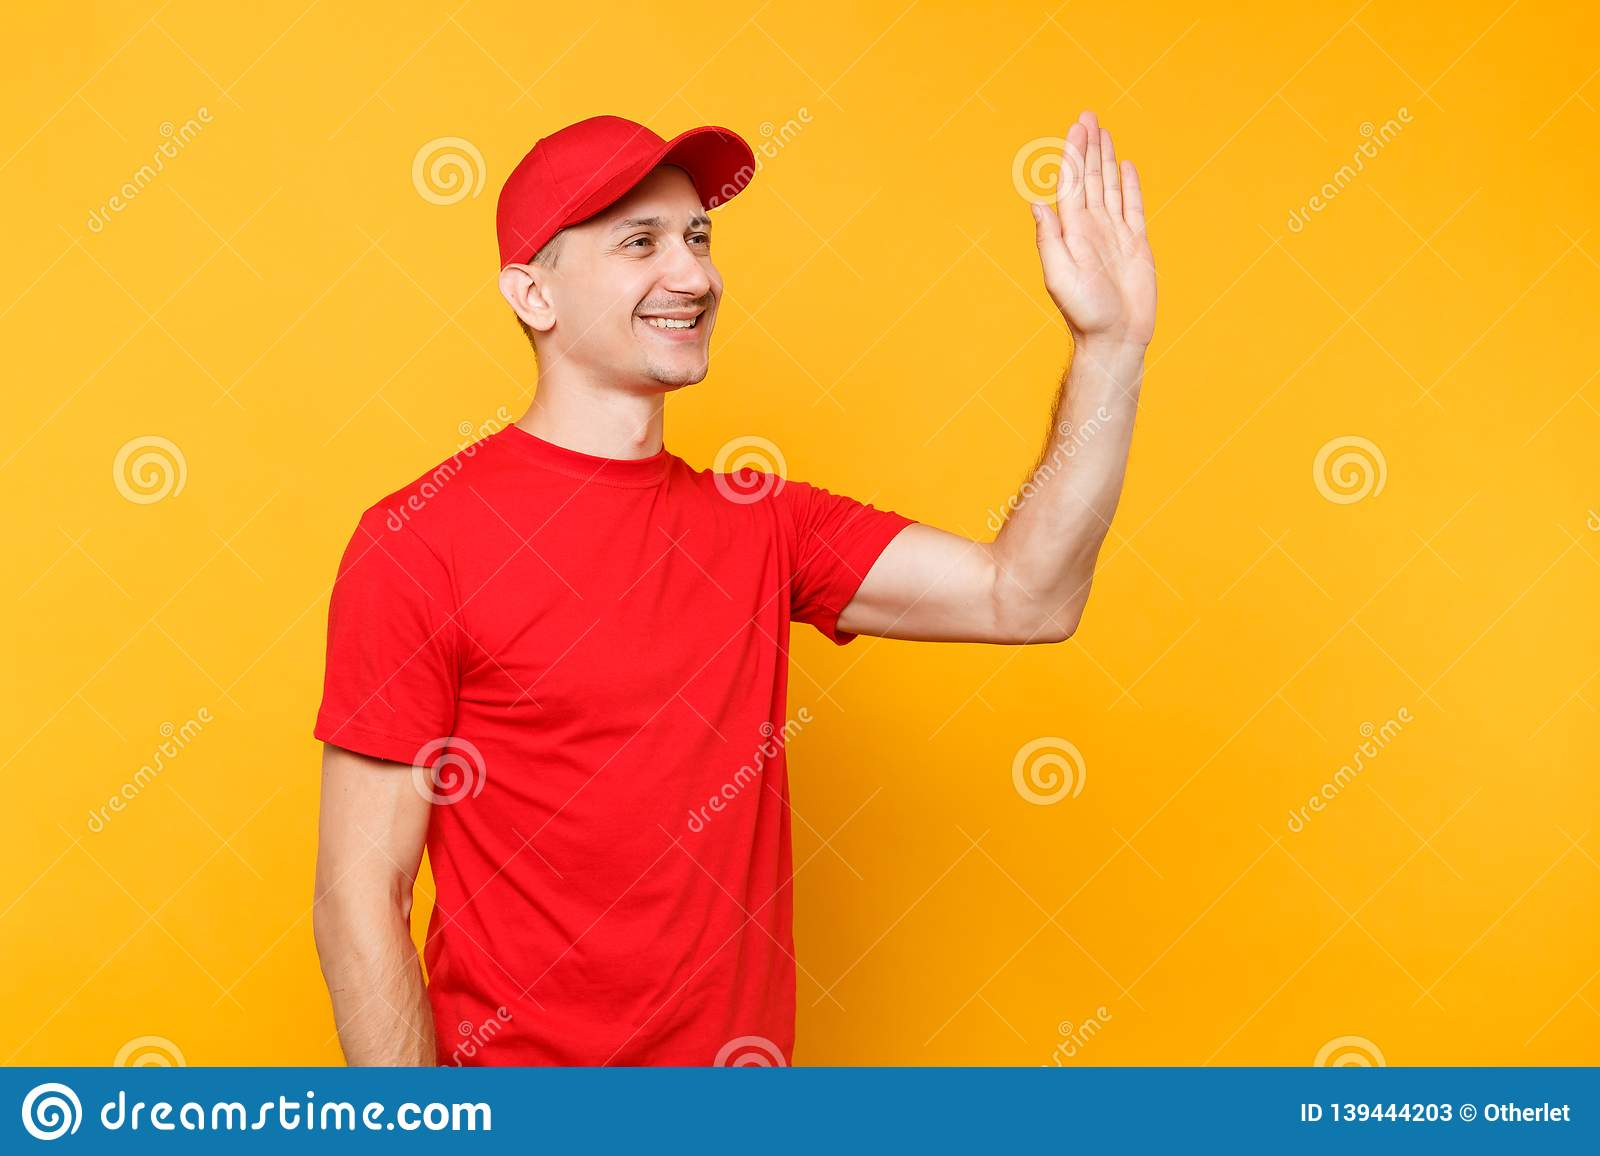 Delivery man in red uniform isolated on yellow background. Smiling male employee in cap, t-shirt courier dealer waving